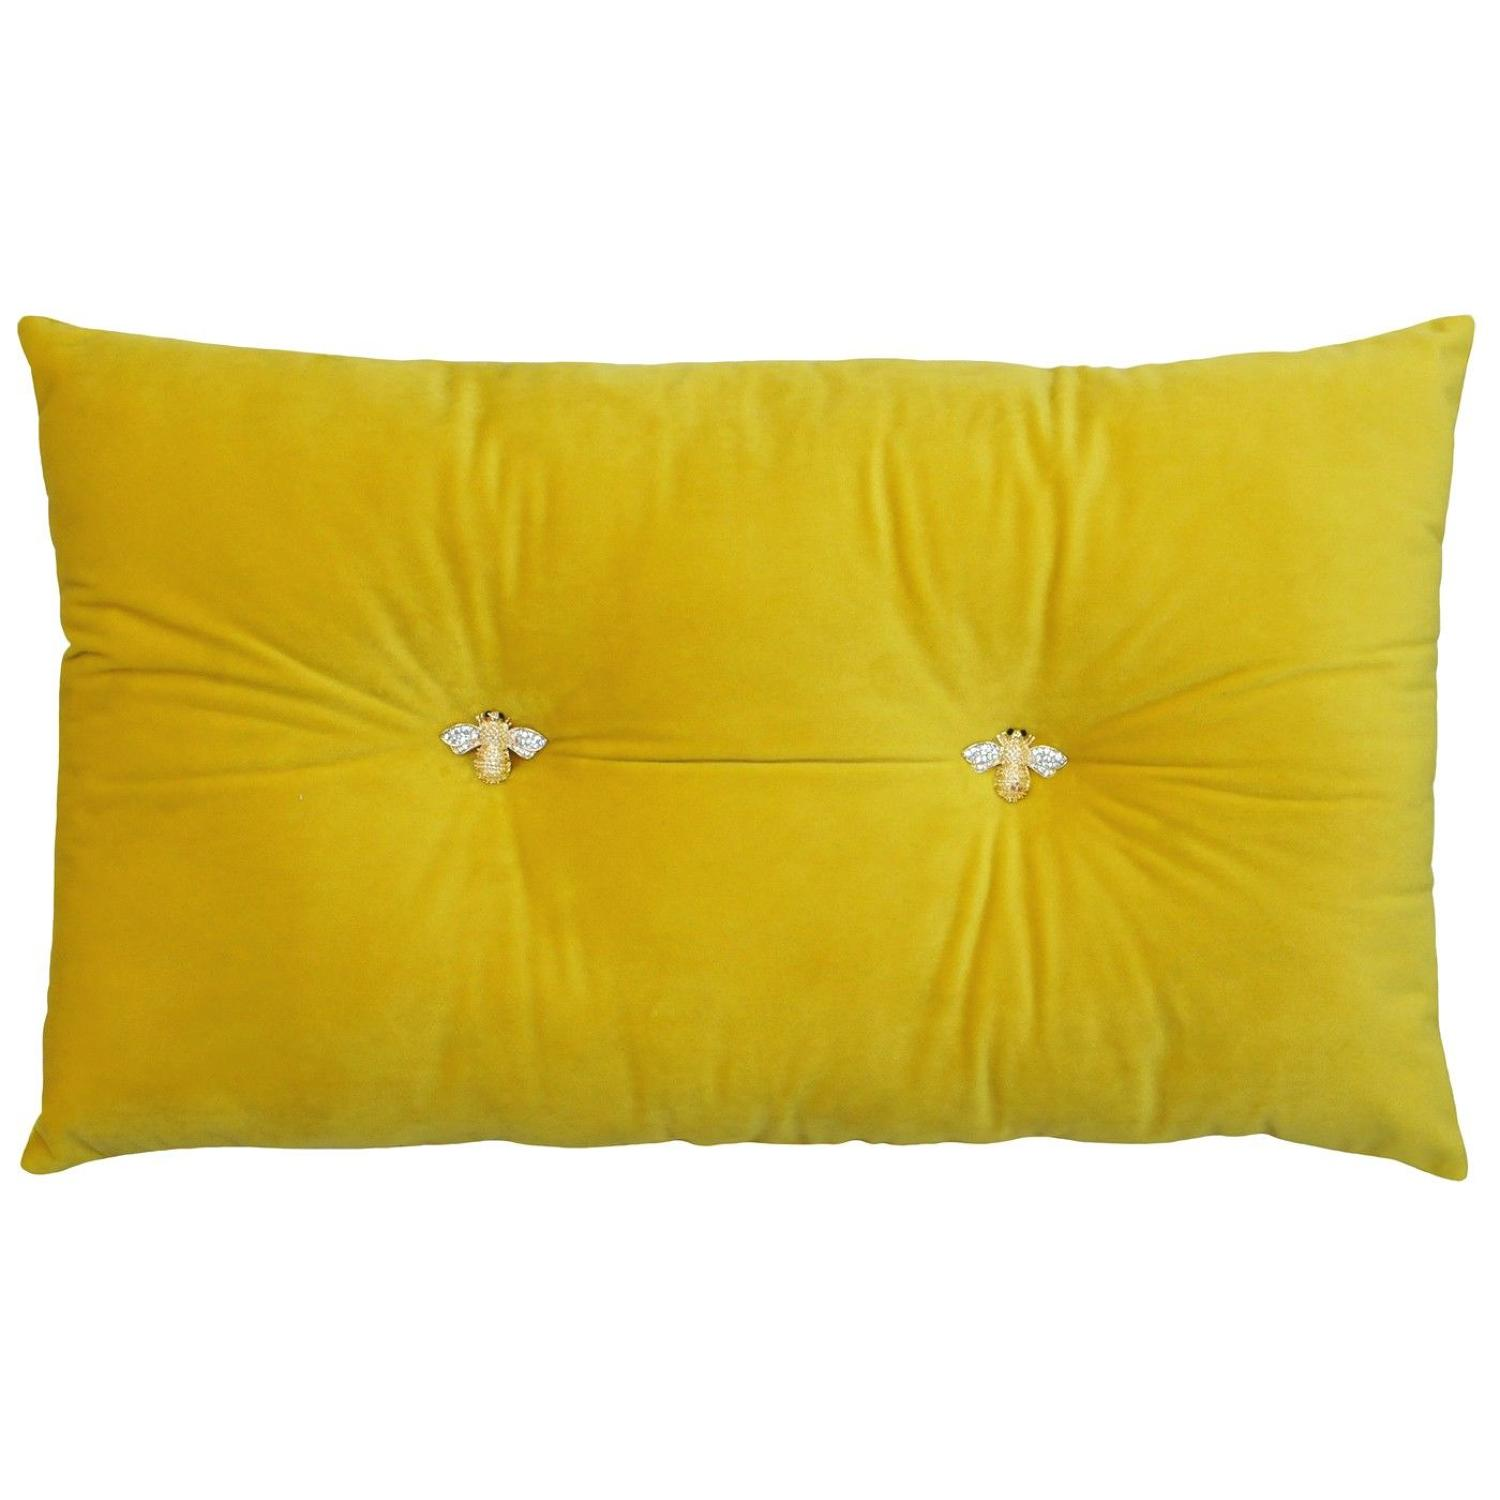 Queen Bee Safron- Velvet soft oblong cushion with jewelled bees